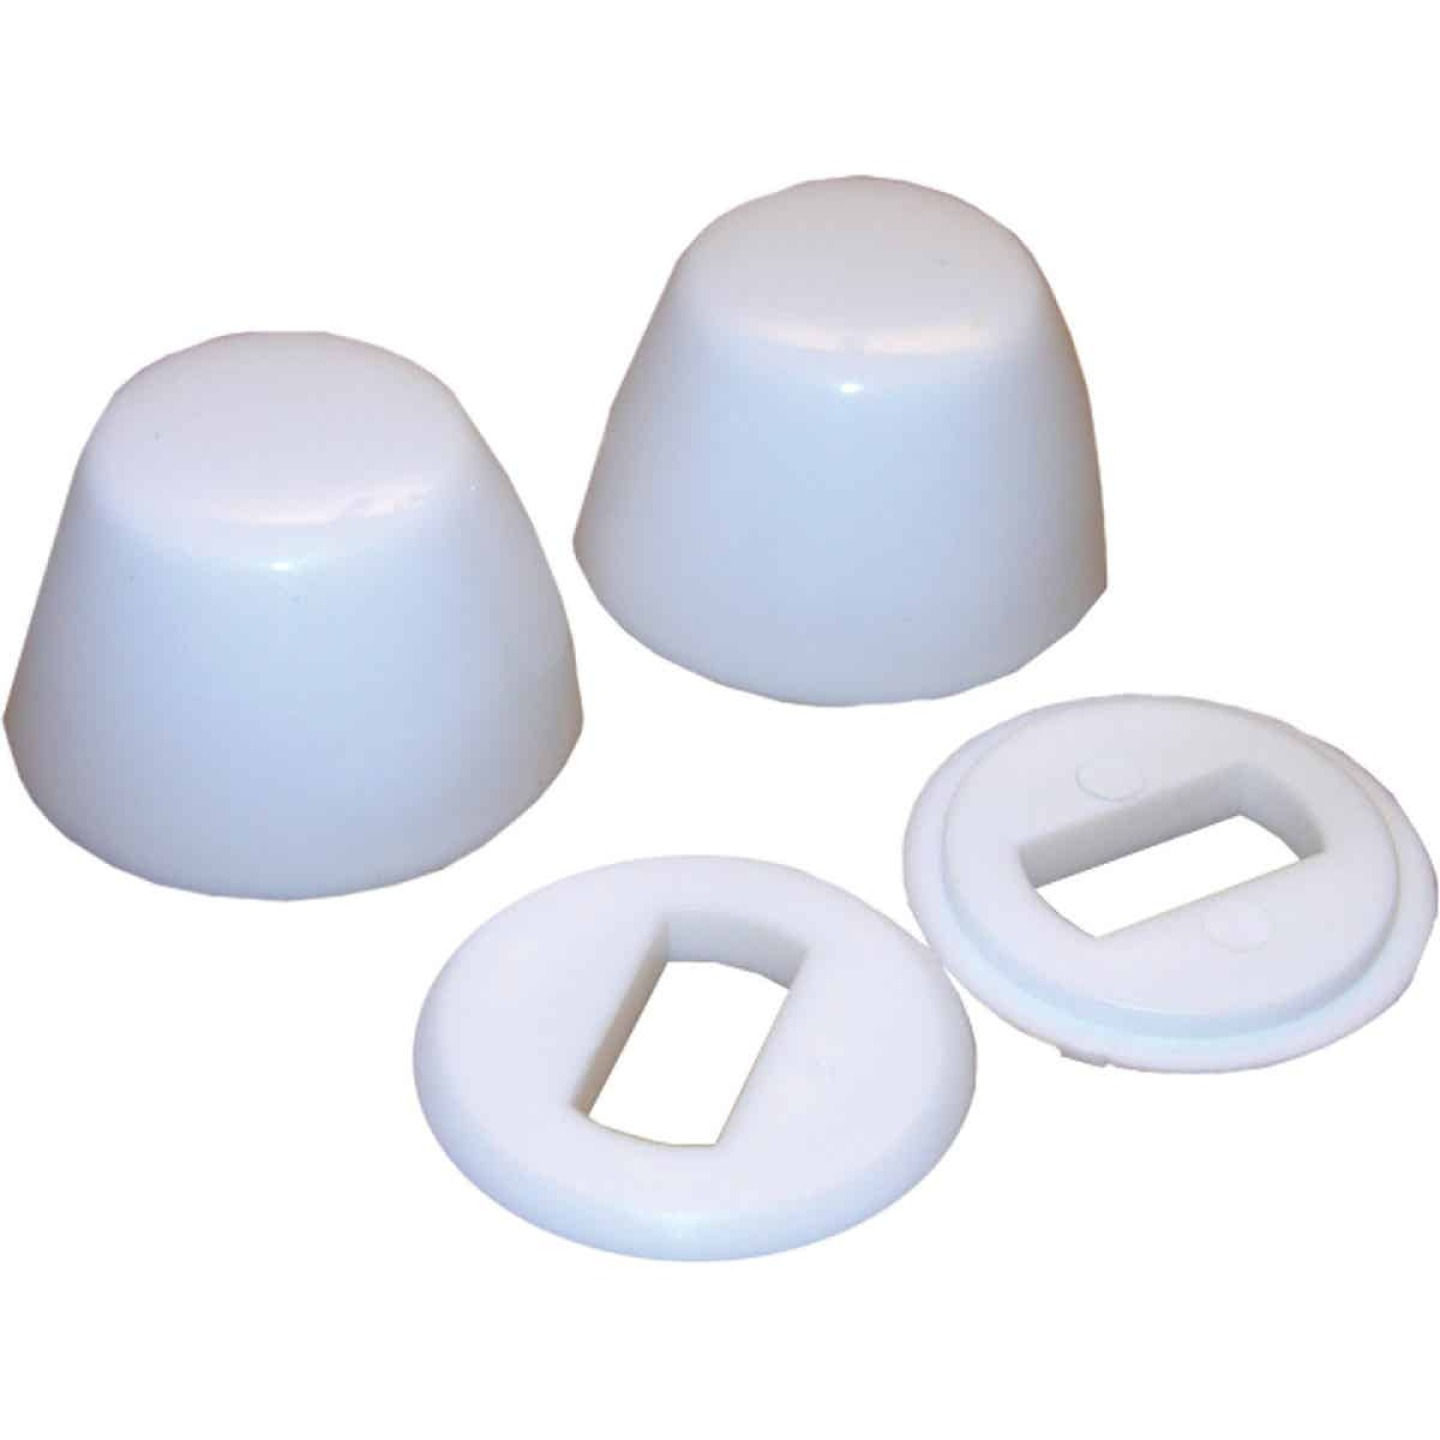 Lasco Round White Plastic Snap-On Toilet Bolt Caps (2 Ct.) Image 1